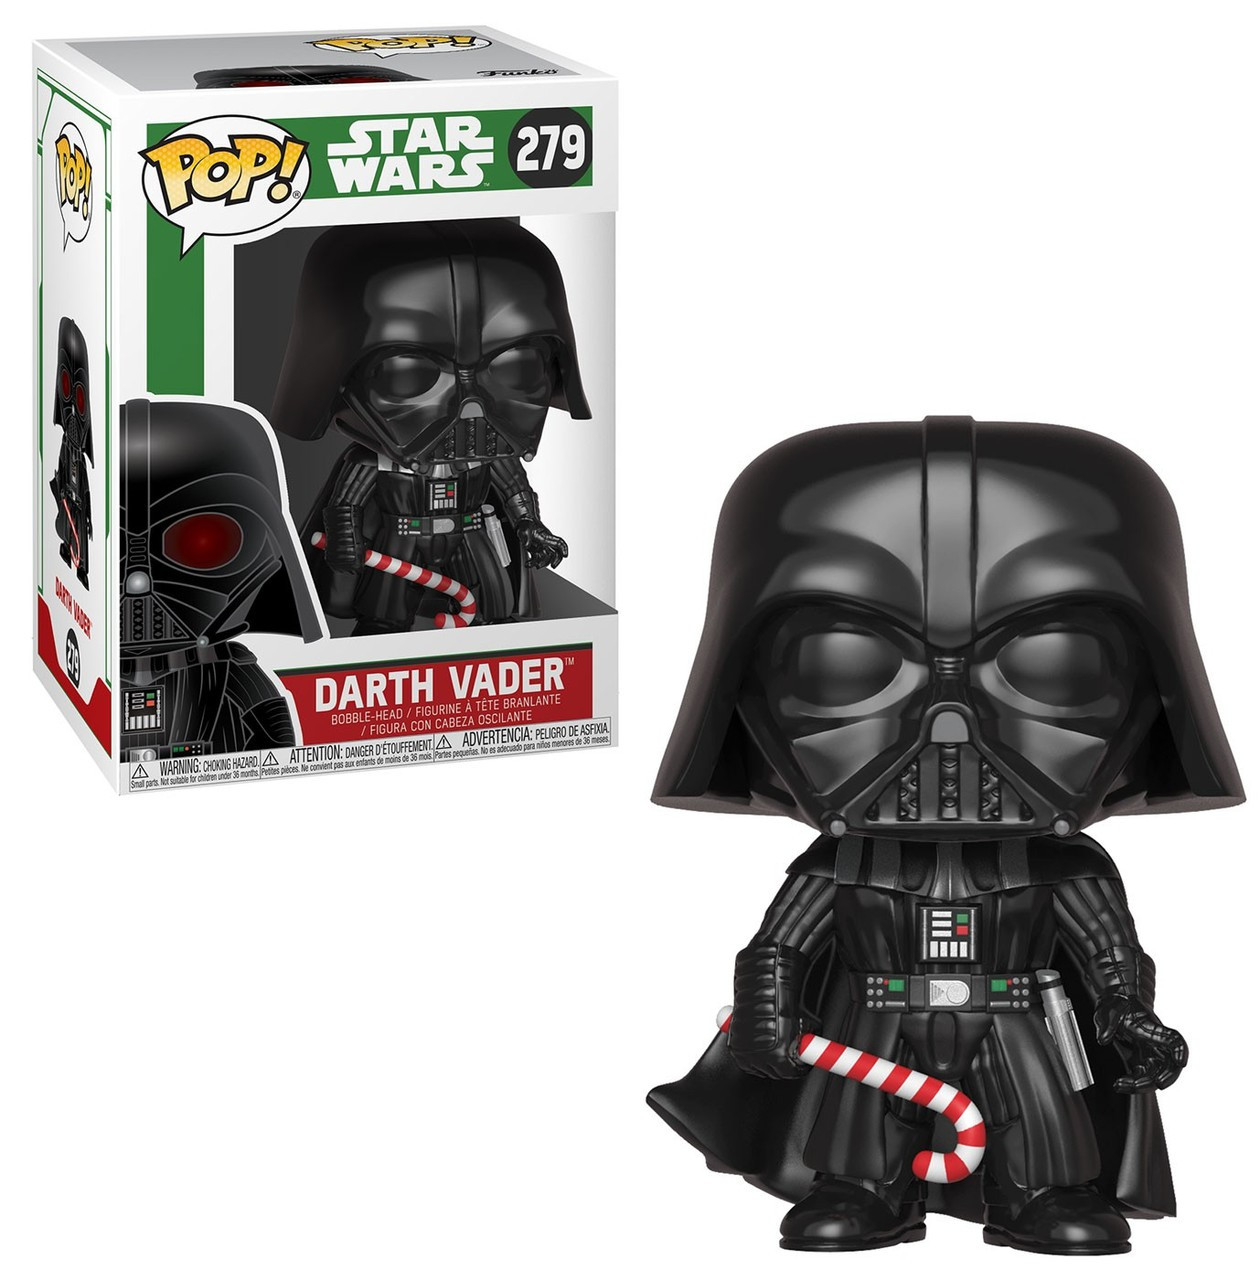 Vinyl Bobble Figure Star Wars Darth Vader Pop